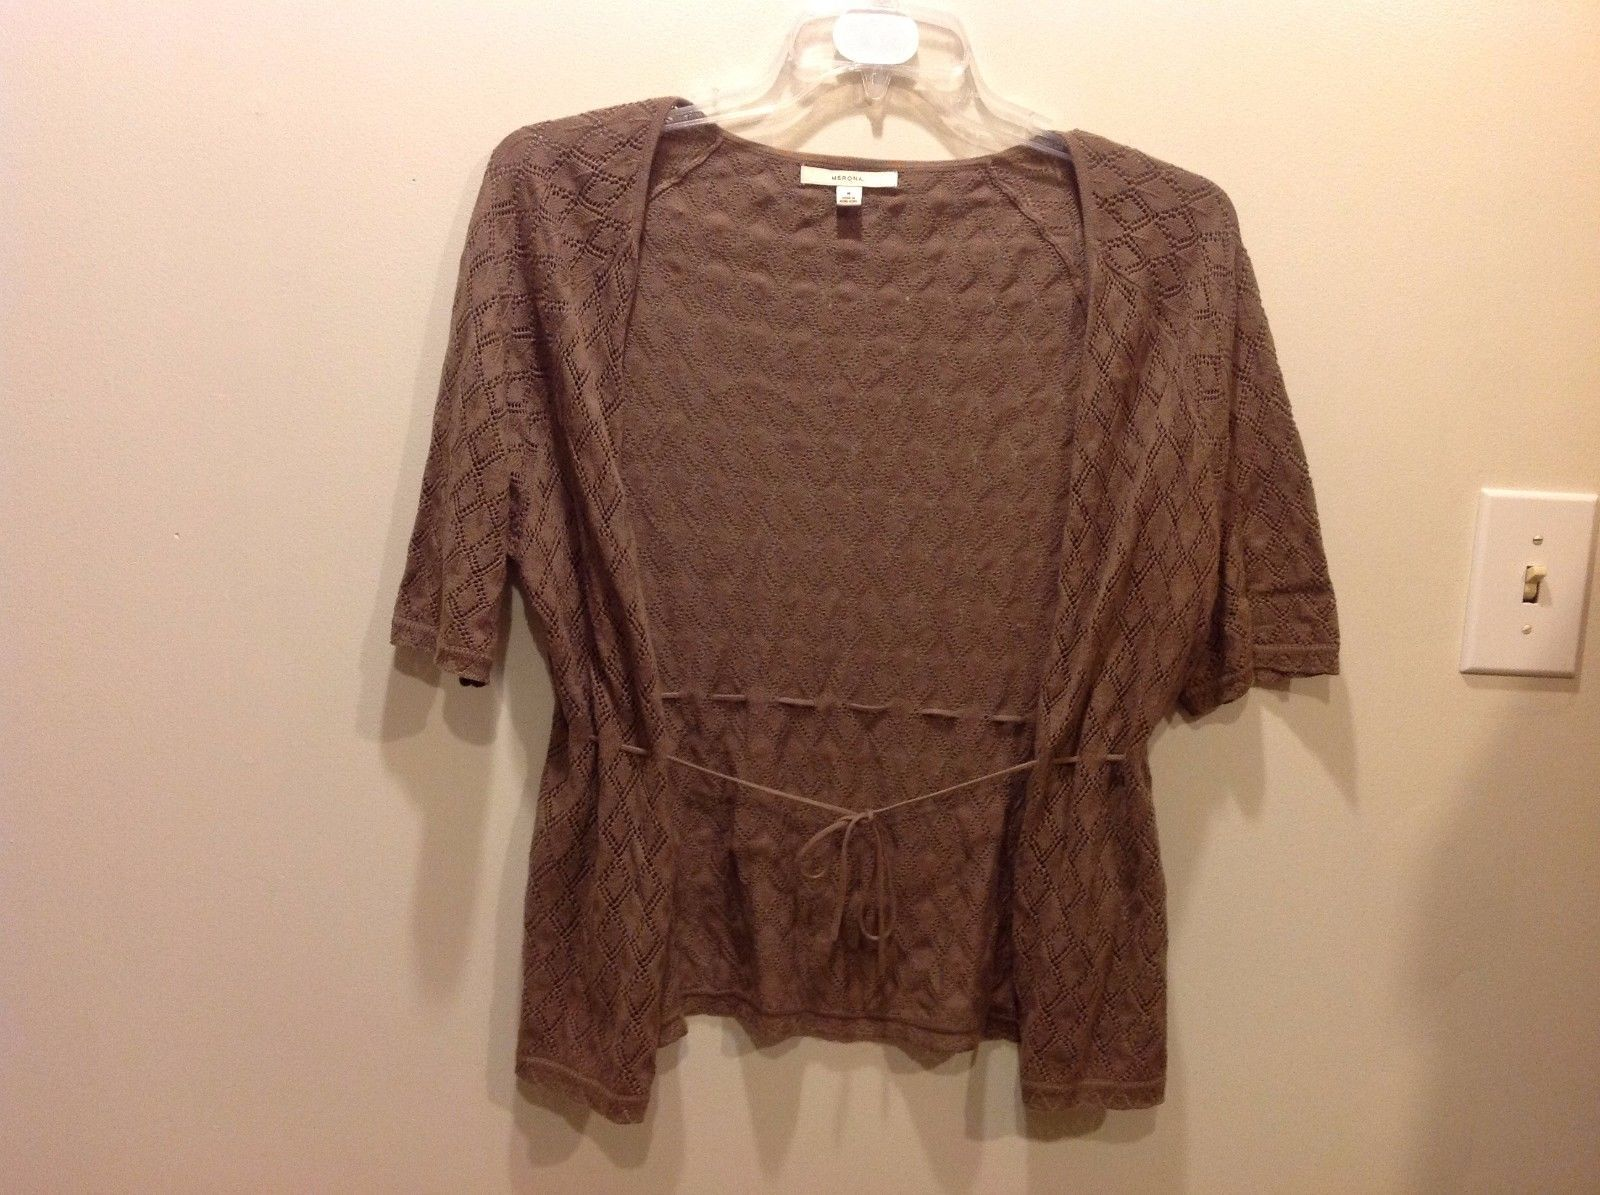 Merona Brown Crocheted Patterned Flowy Open Front Top w Tie String Sz M